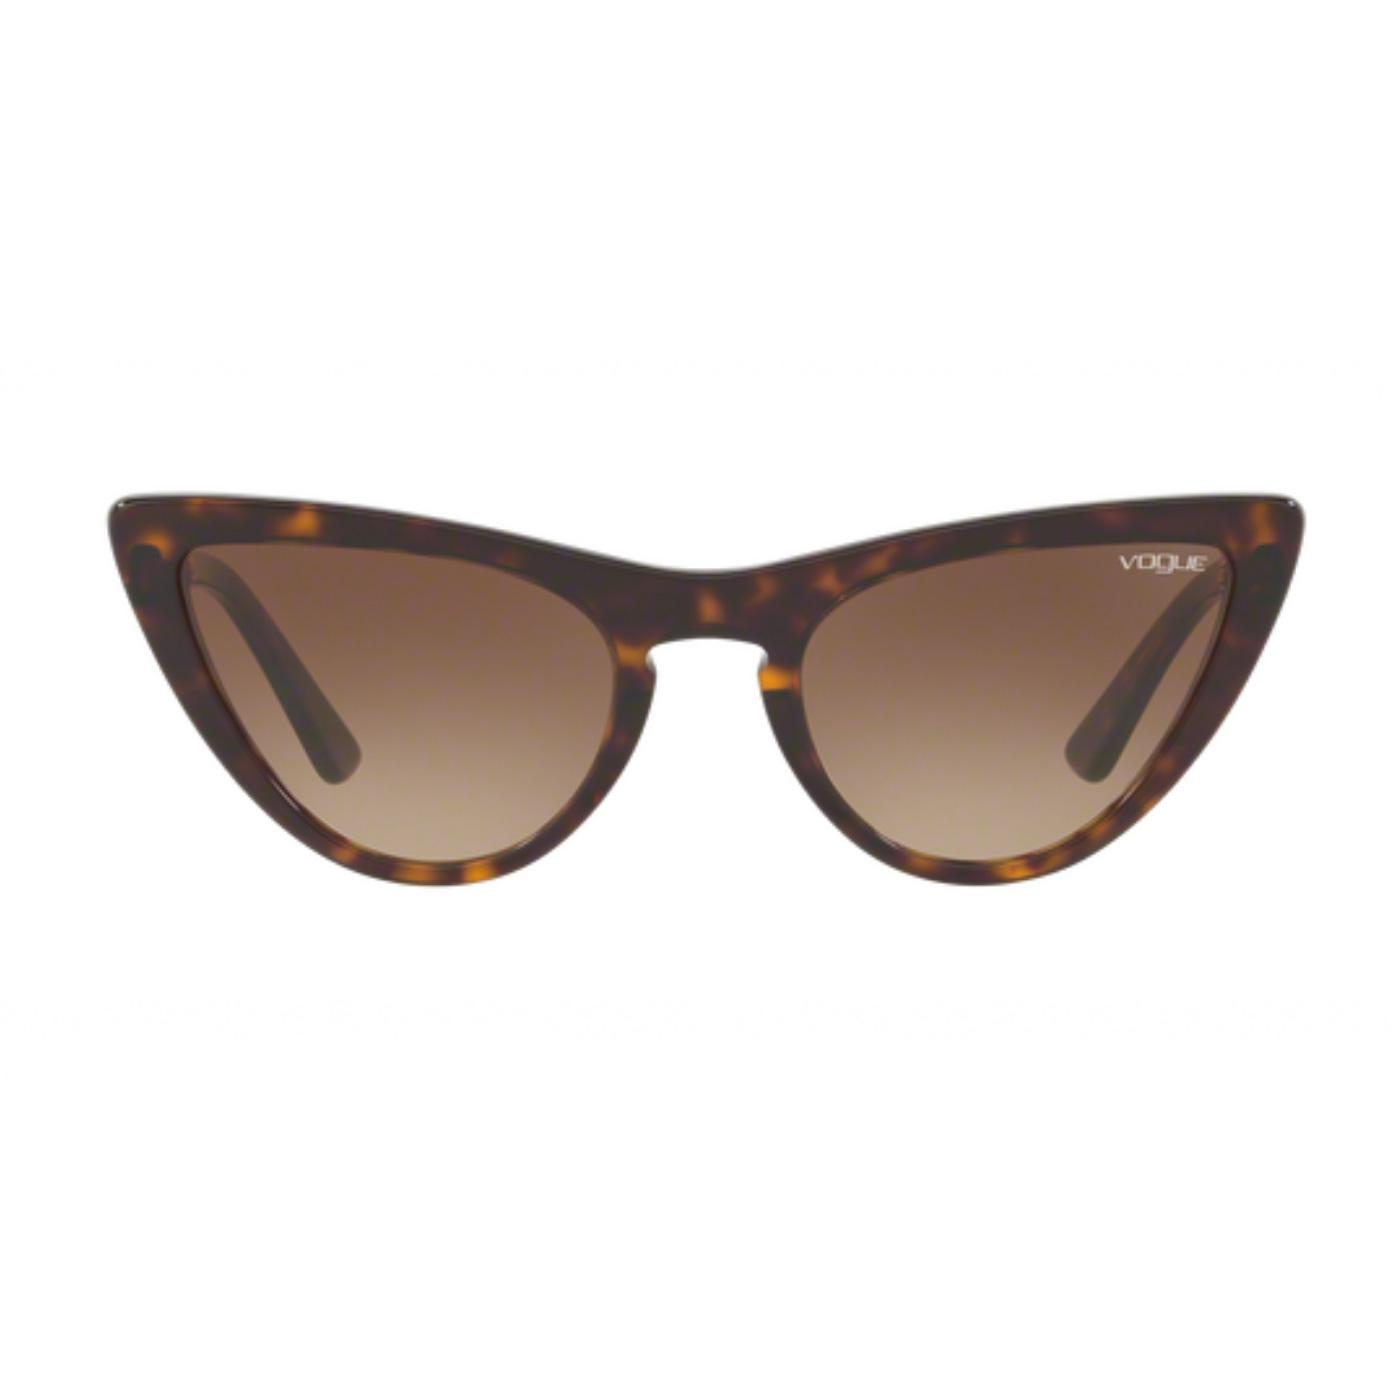 VOGUE Gigi Hadid Retro Catseye Sunglasses - Brown